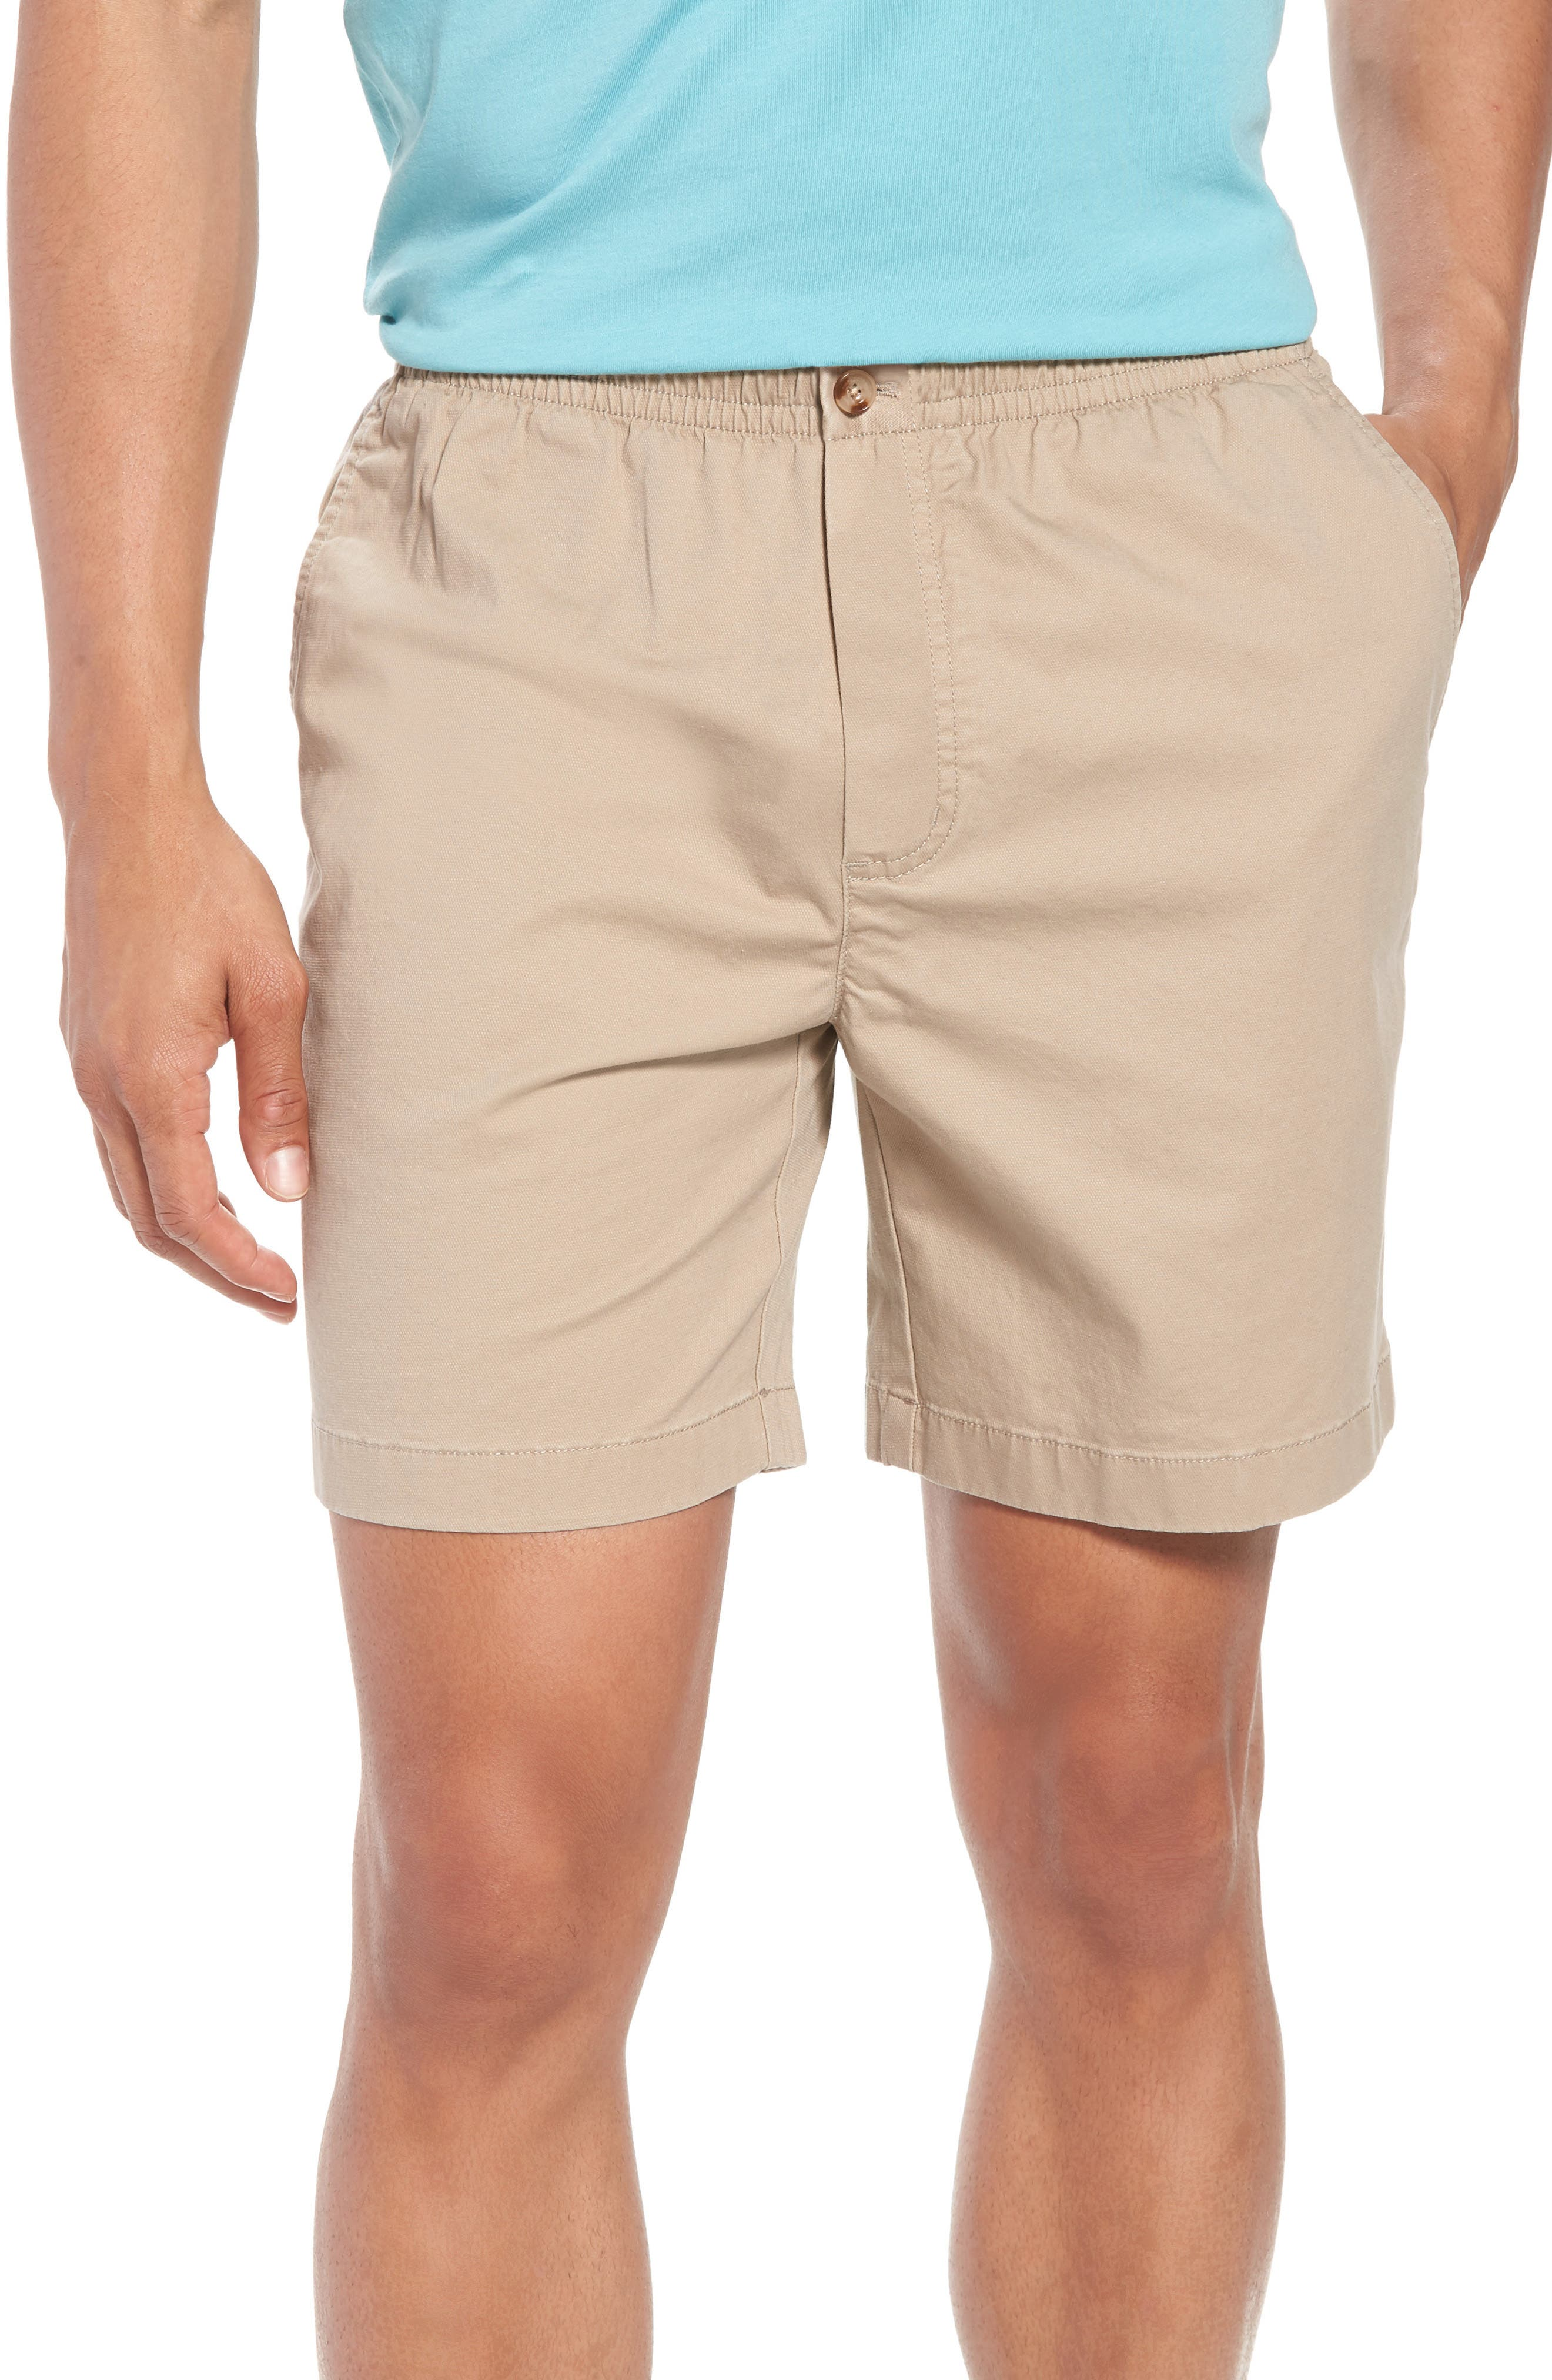 Jetty Stretch Cotton Shorts,                             Main thumbnail 1, color,                             250